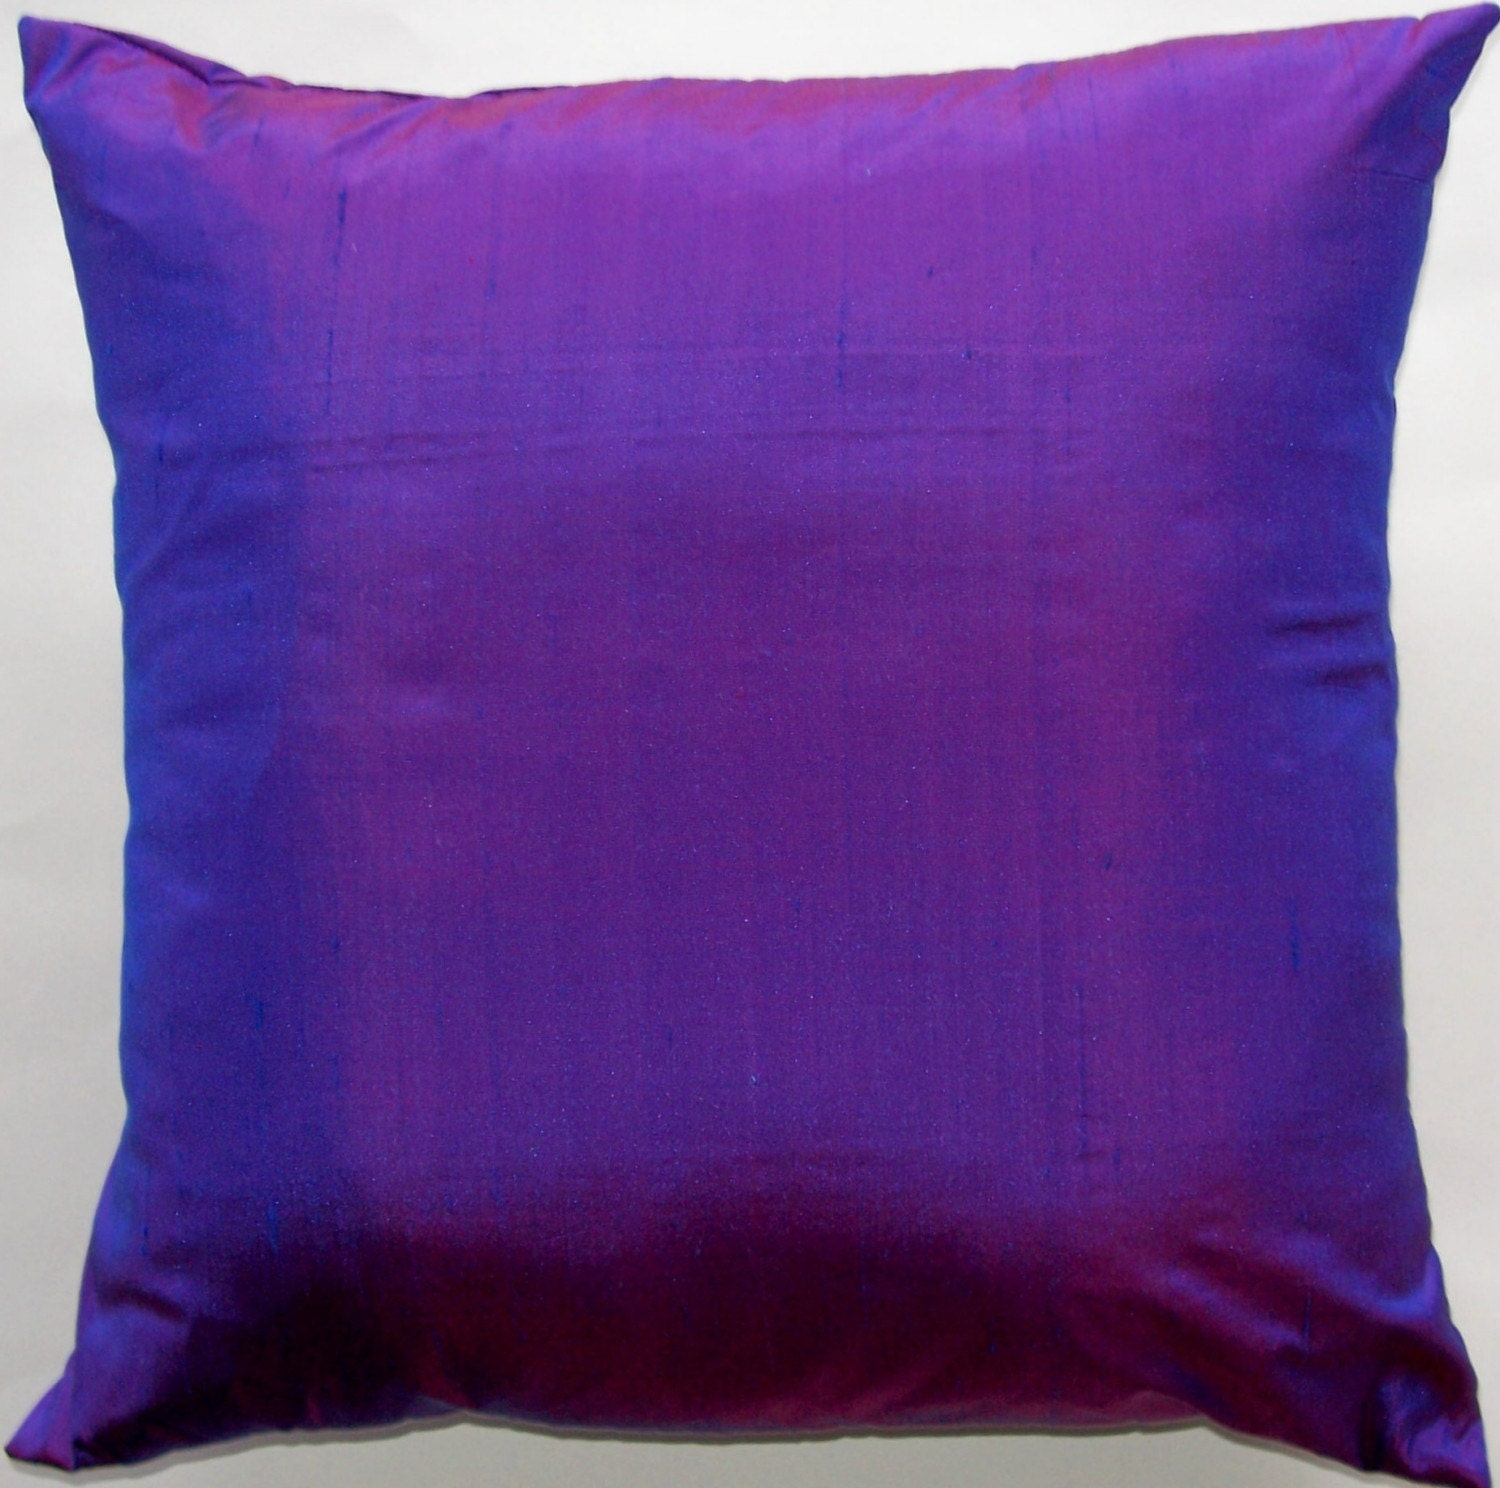 Violet Purple Throw Pillow Silk Cushion Cover 18 x 18